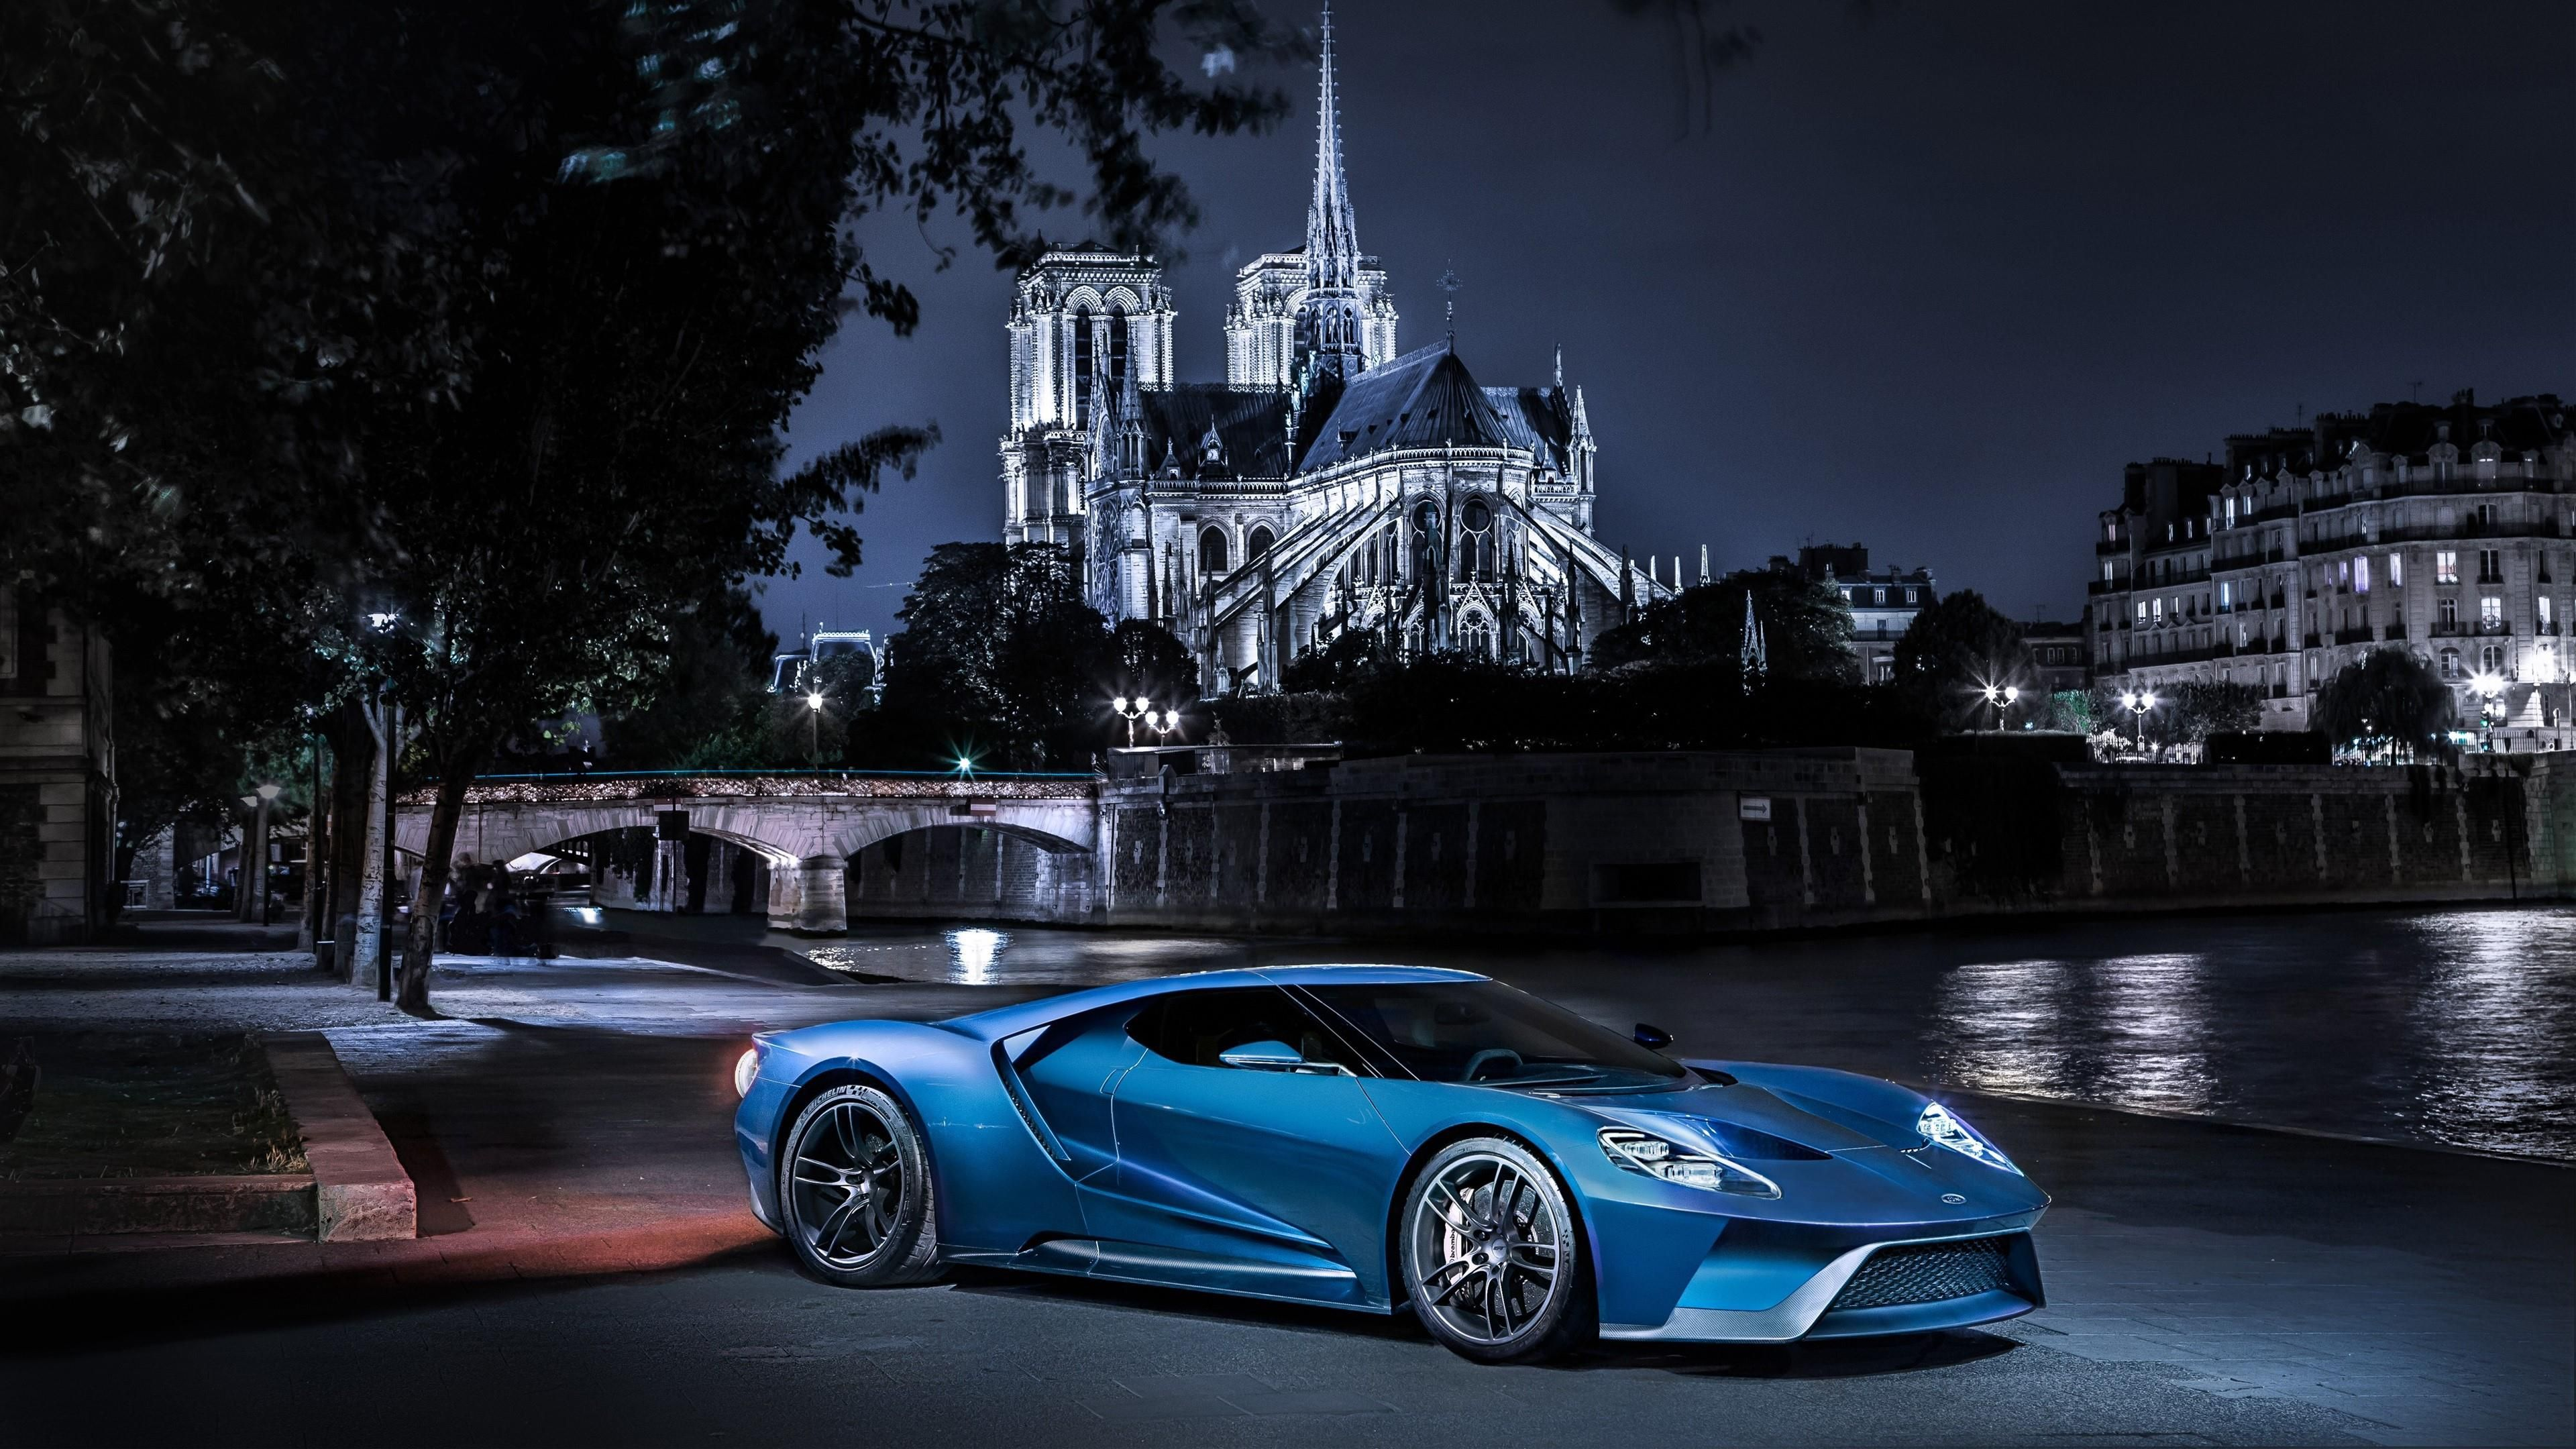 Ford Gt Wallpaper For Iphone mZQ · Cars Desktop HD